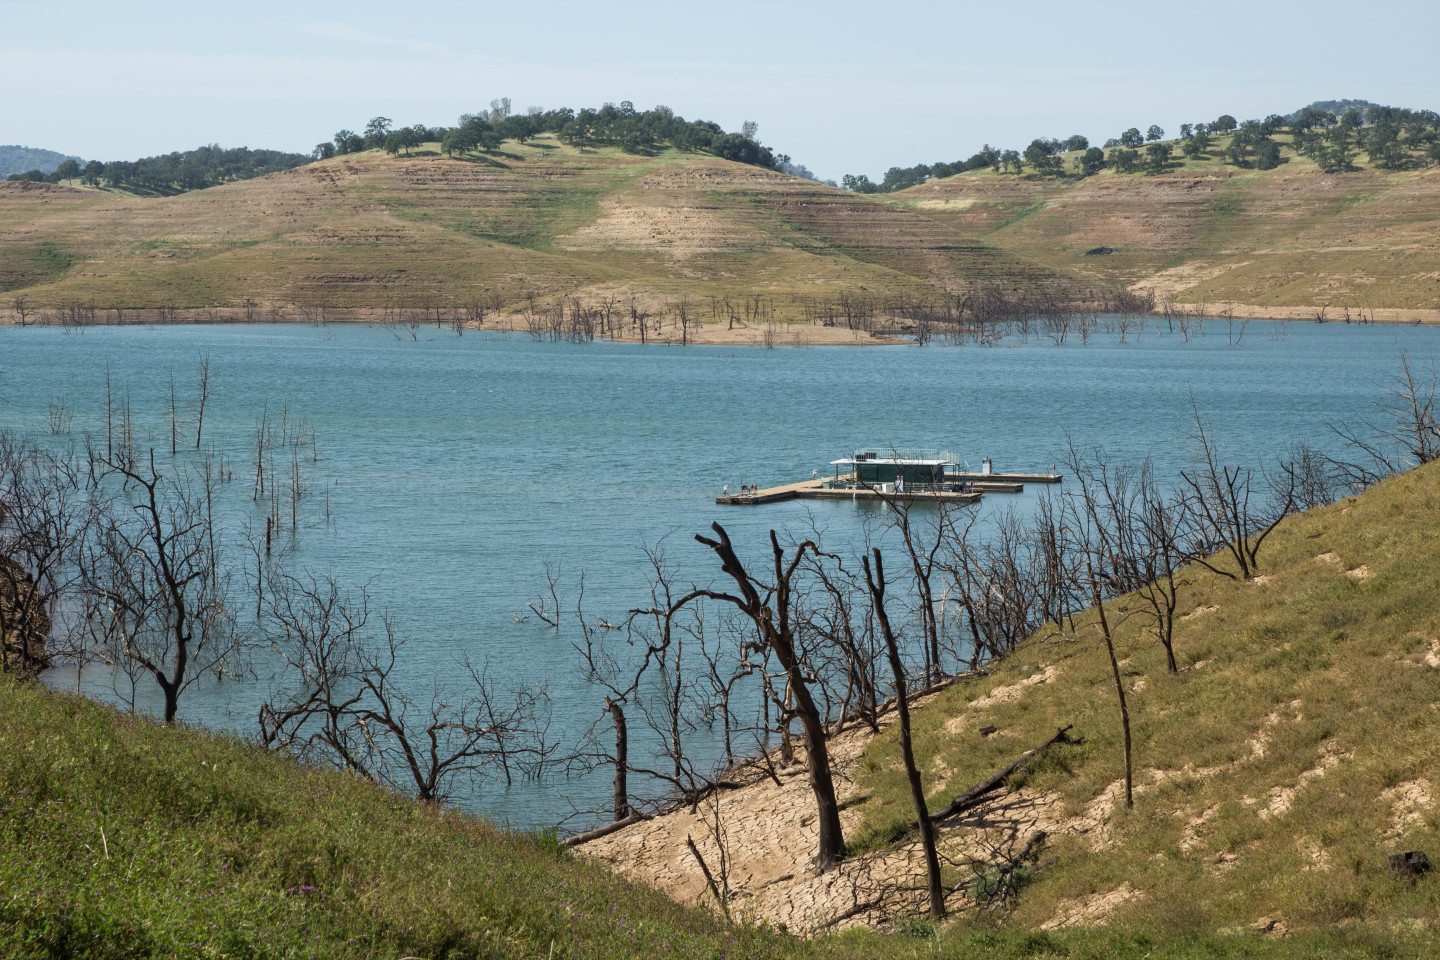 New Melones Lake, the state's fourth-largest reservoir, pictured in April 2015.  Dan Brekke/KQED